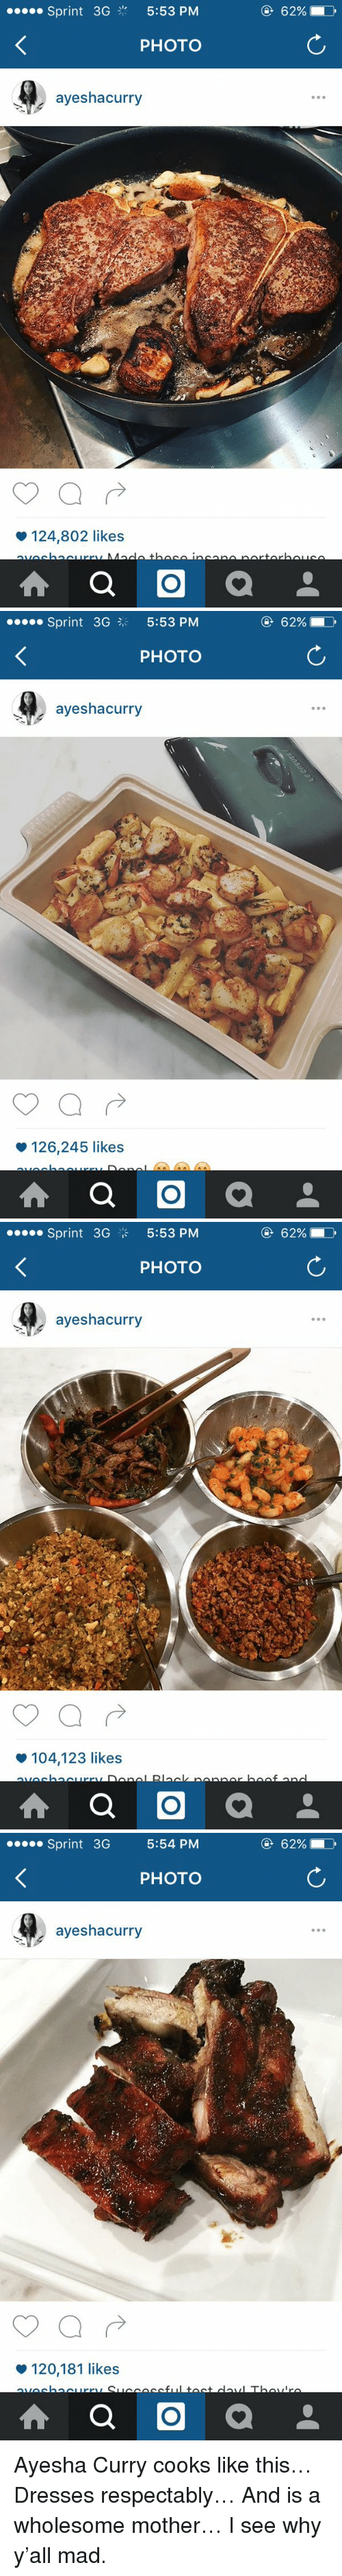 Ayesha Curry, Respect, and Dress: Sprint 3G  5:53 PM  PHOTO  ayeshacurry  124,802 likes  A a O  a  62% D   Sprint 3G 3 5:53 PM  PHOTO  ayeshacurry  126,245 likes  A a O  a  62%   Sprint 3G  5:53 PM  PHOTO  ayeshacurry  104,123 likes  A a O  a  62%  D   Sprint 3G  5:54 PM  PHOTO  ayeshacurry  120,181 likes  A a O  a Ayesha Curry cooks like this… Dresses respectably… And is a wholesome mother… I see why y'all mad.